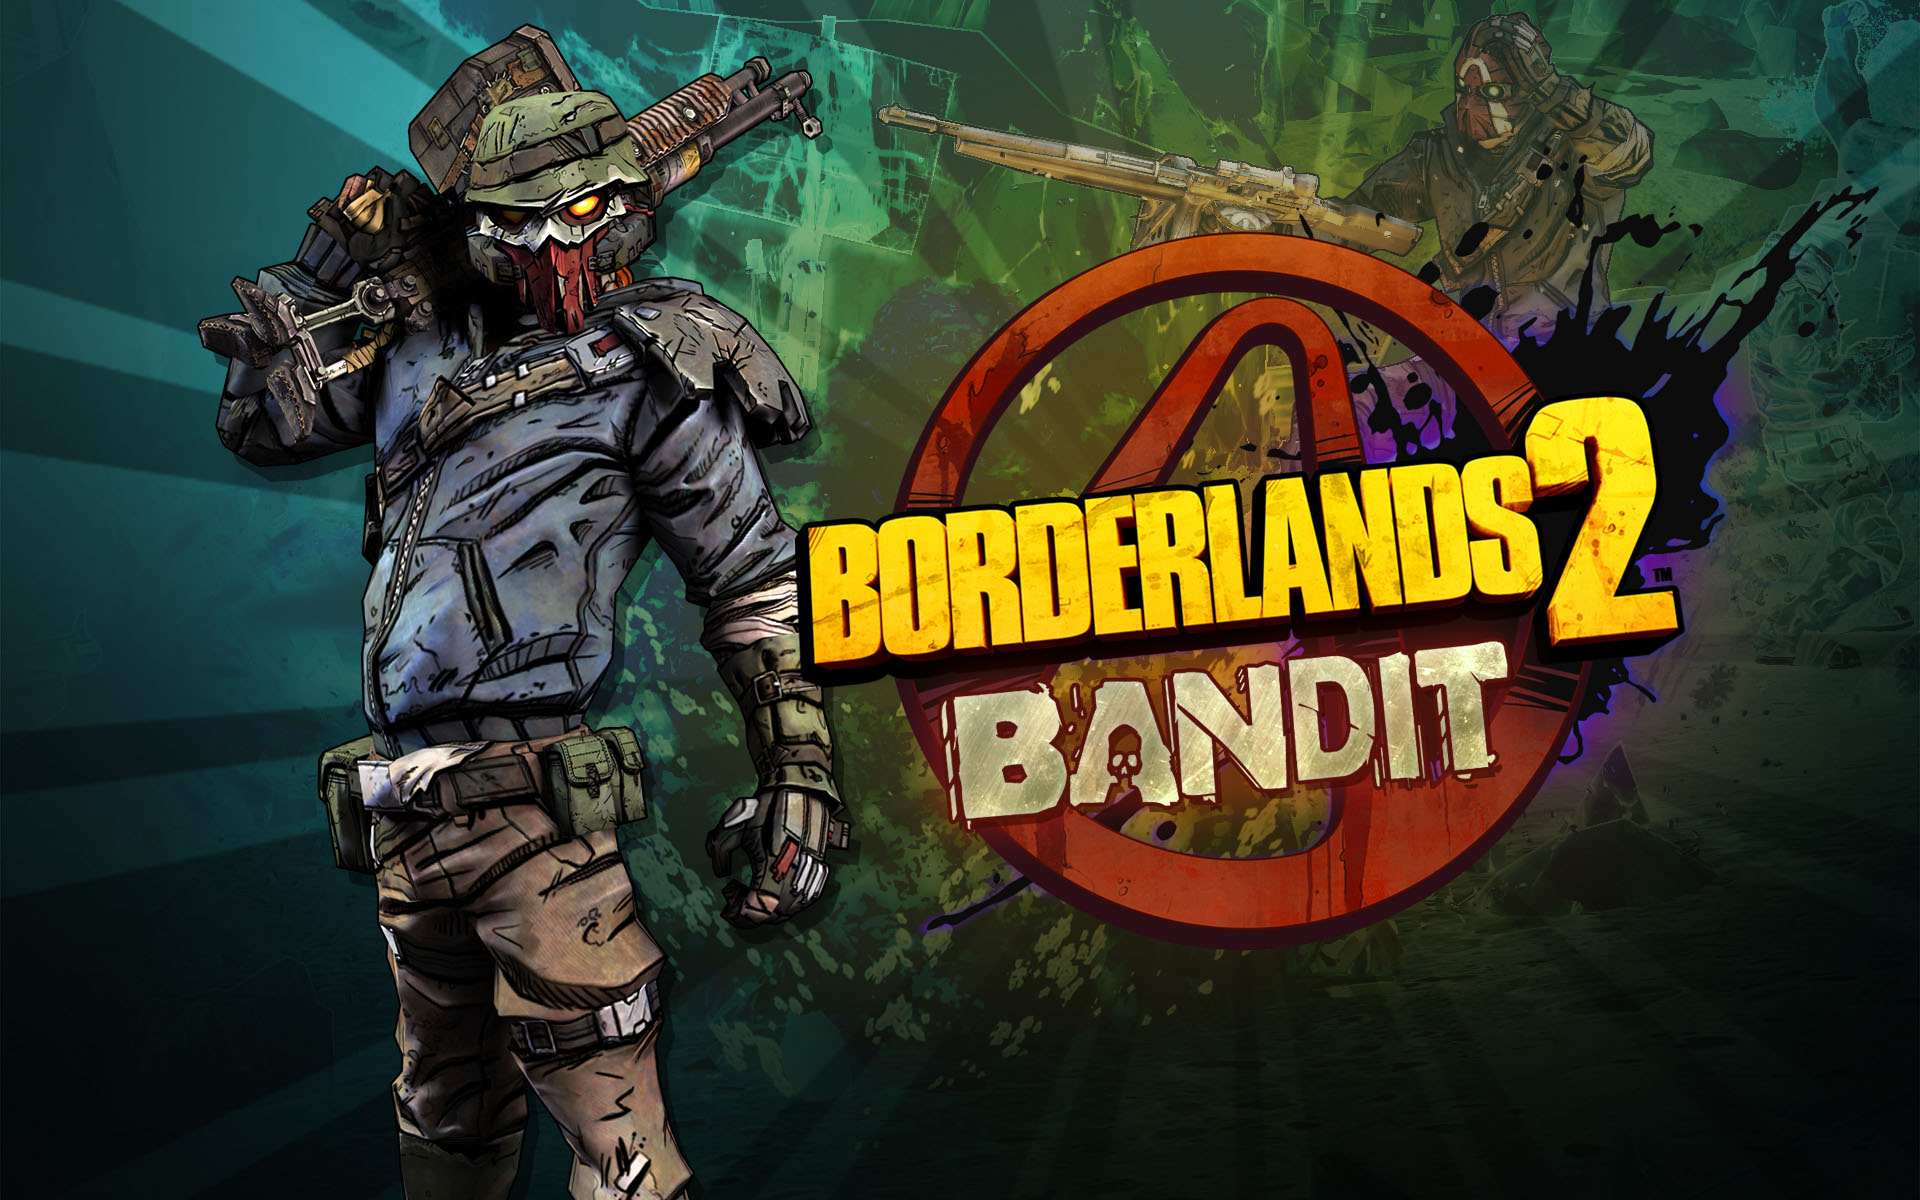 borderlands 2 full hd wallpaper and background image | 1920x1200